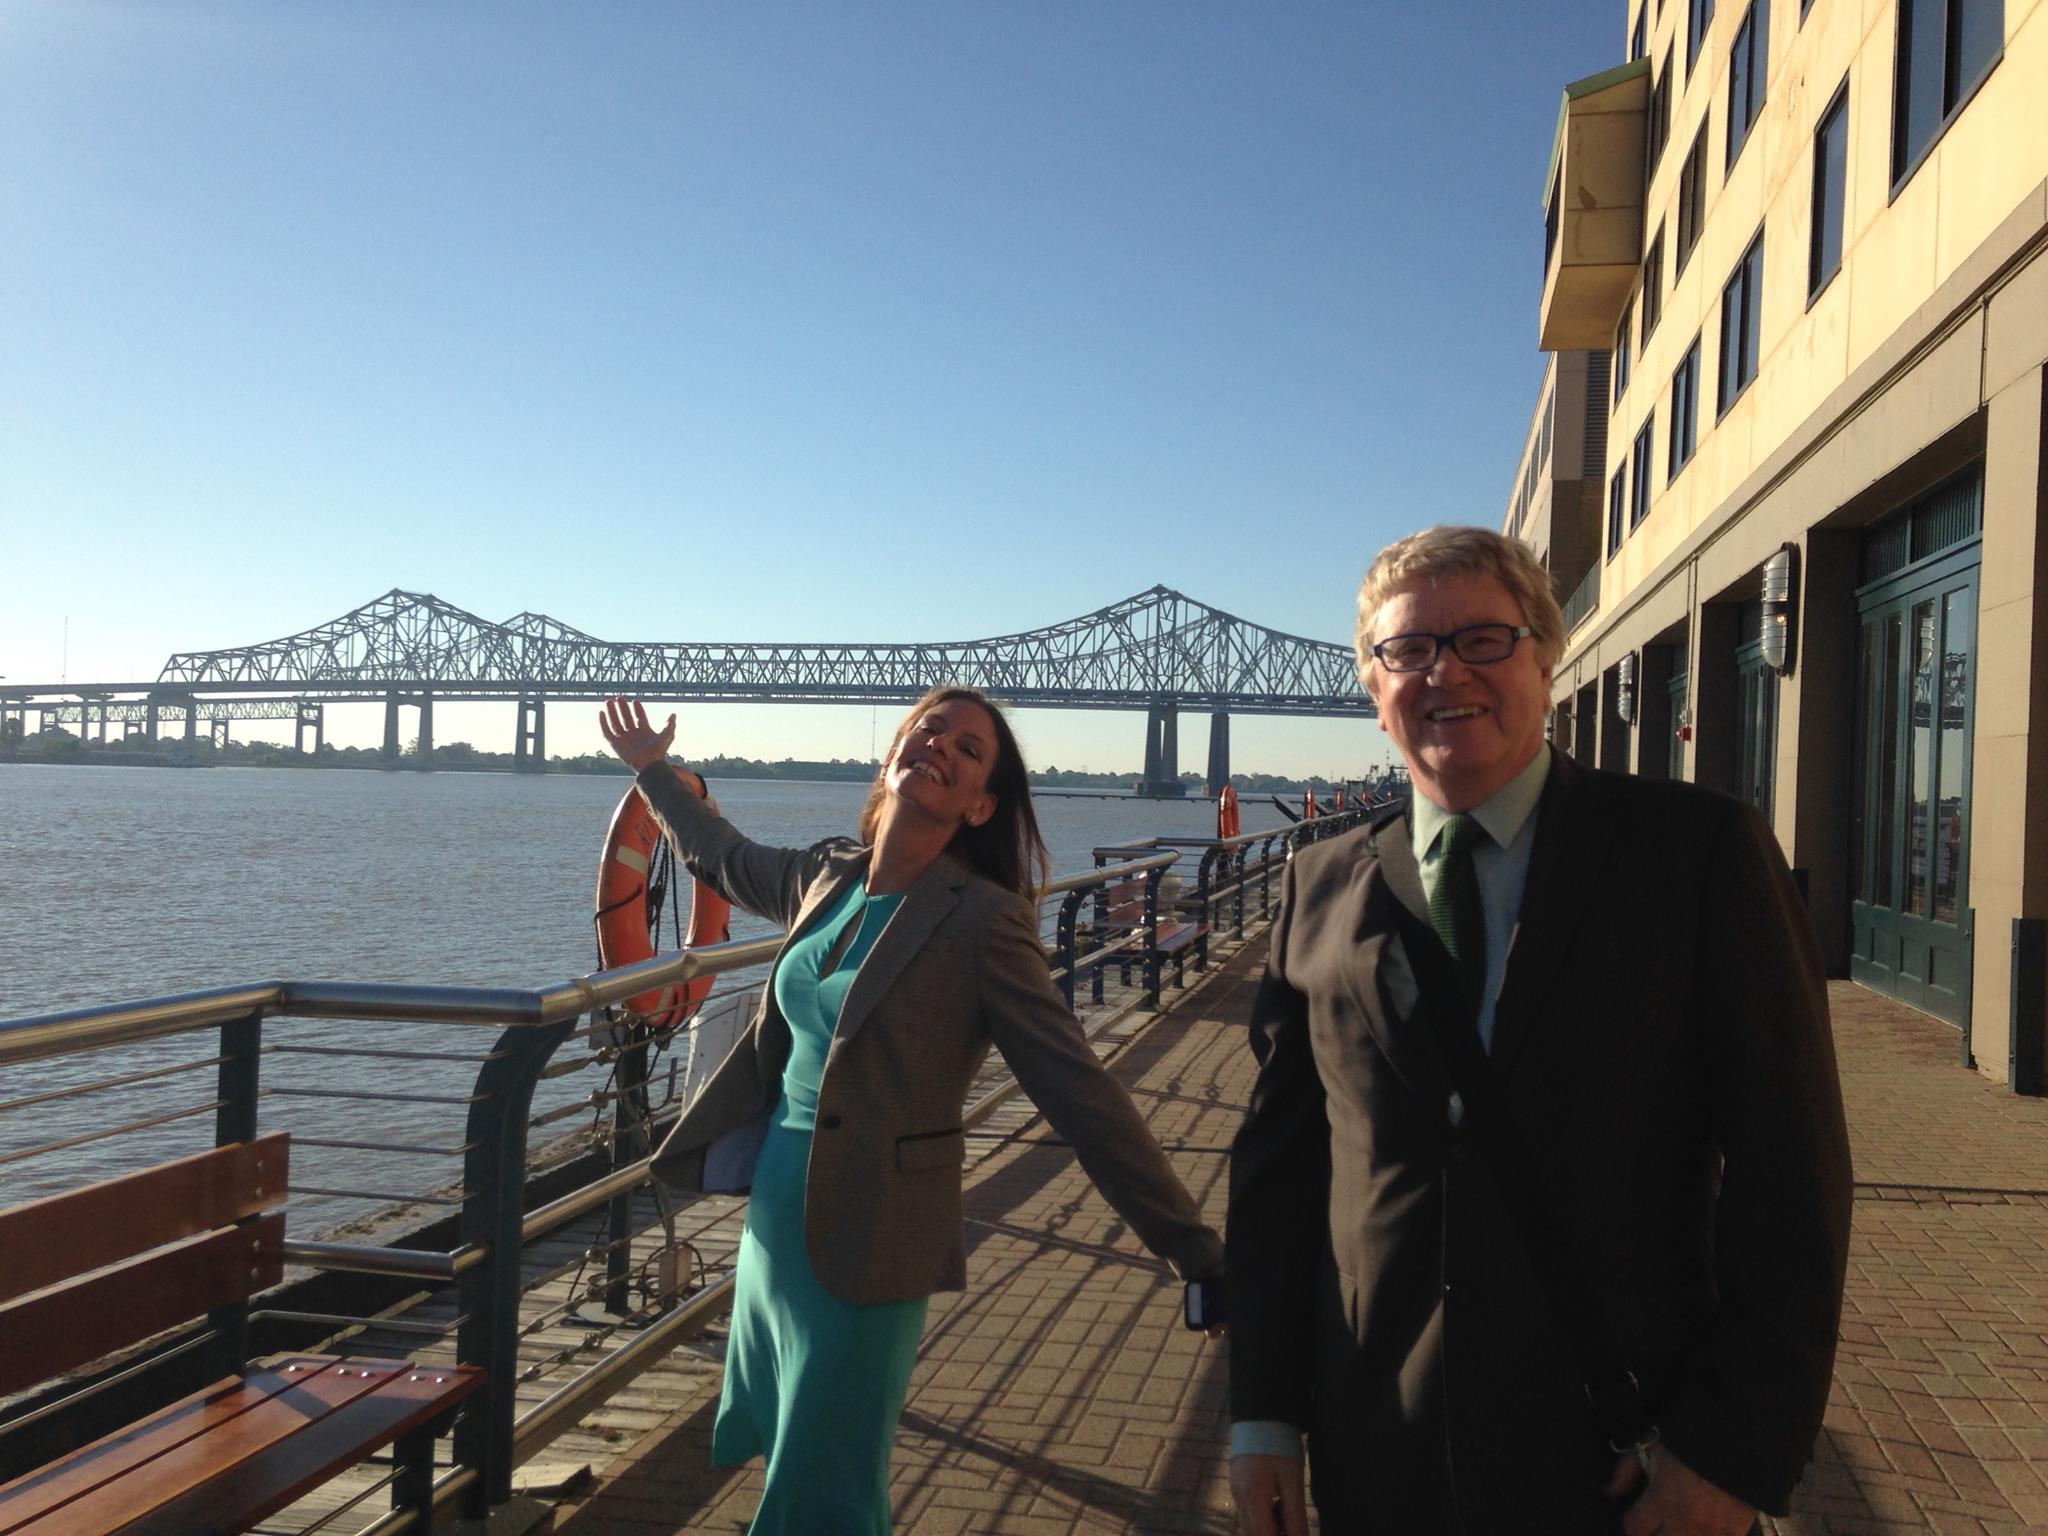 motum b2b leadership walking along the pier in New Orleans.